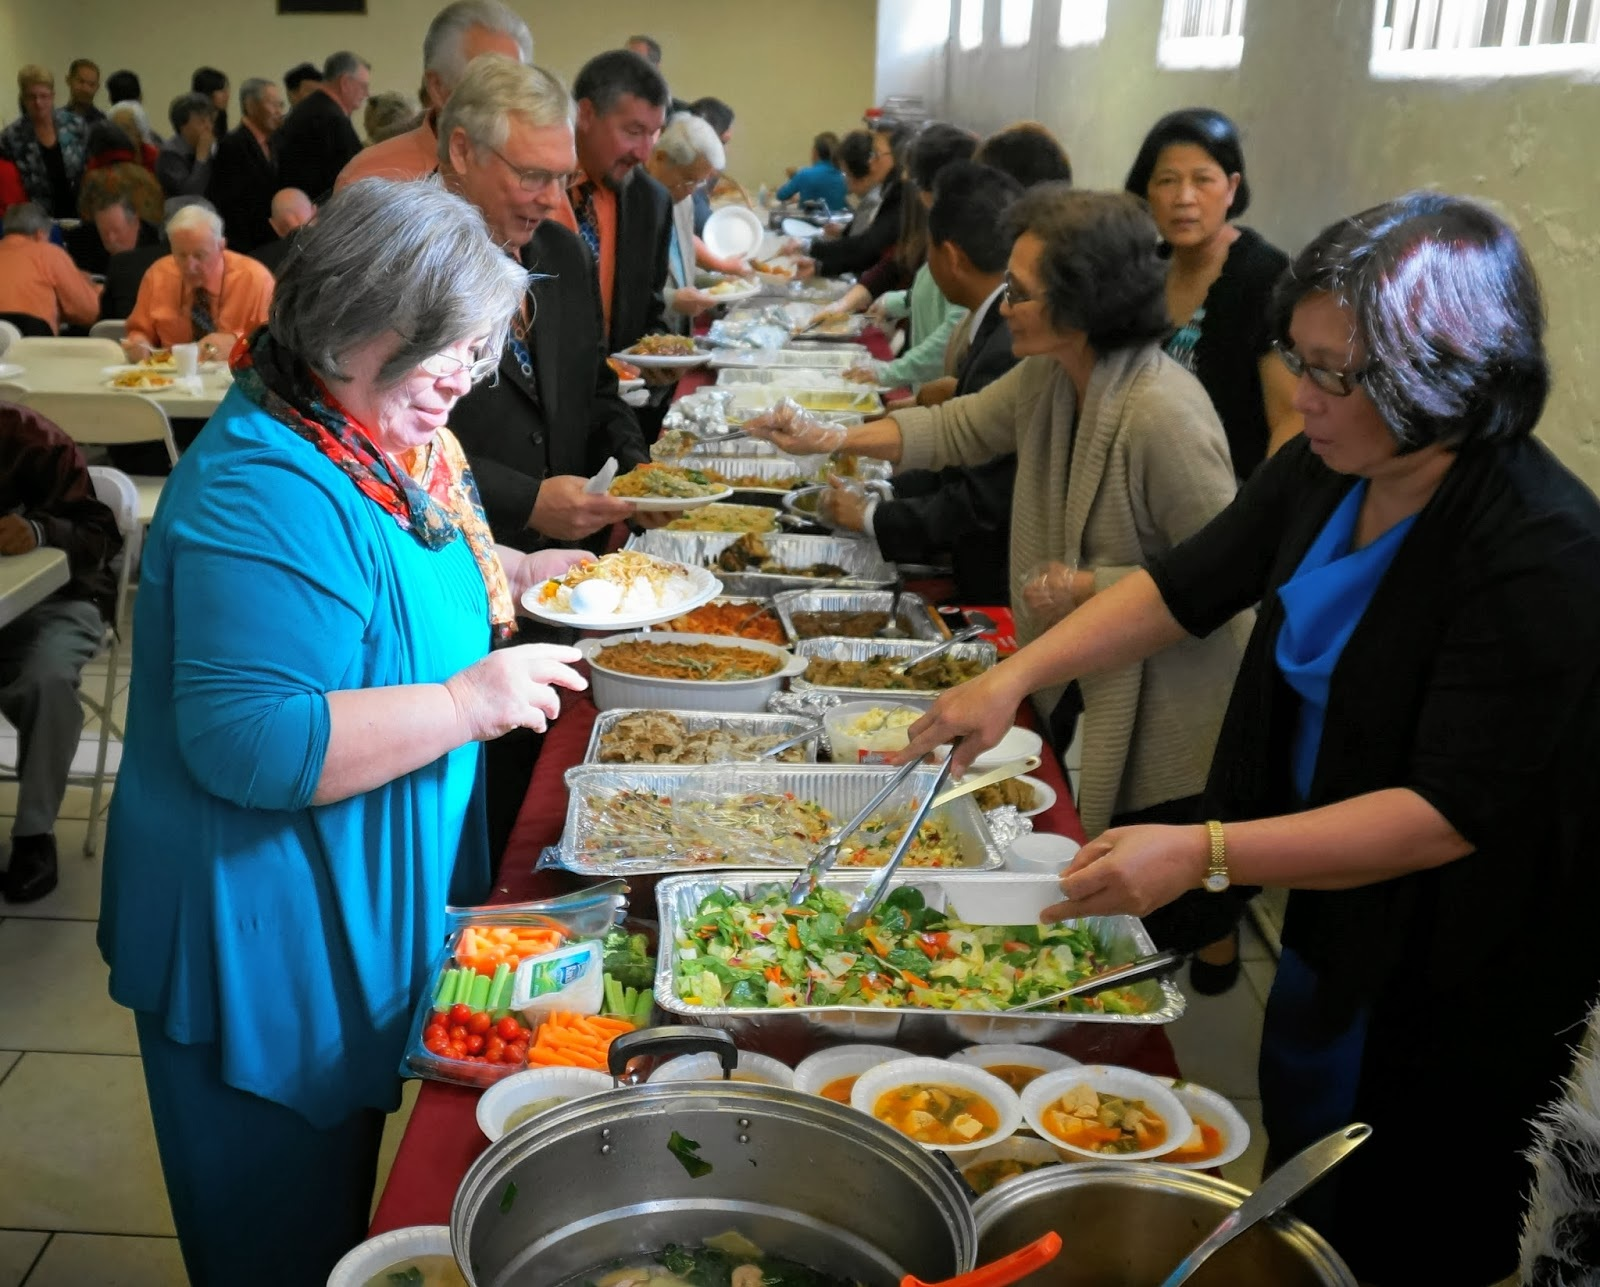 90% of Adventists say they may have overdone it at last Sabbath's potluck